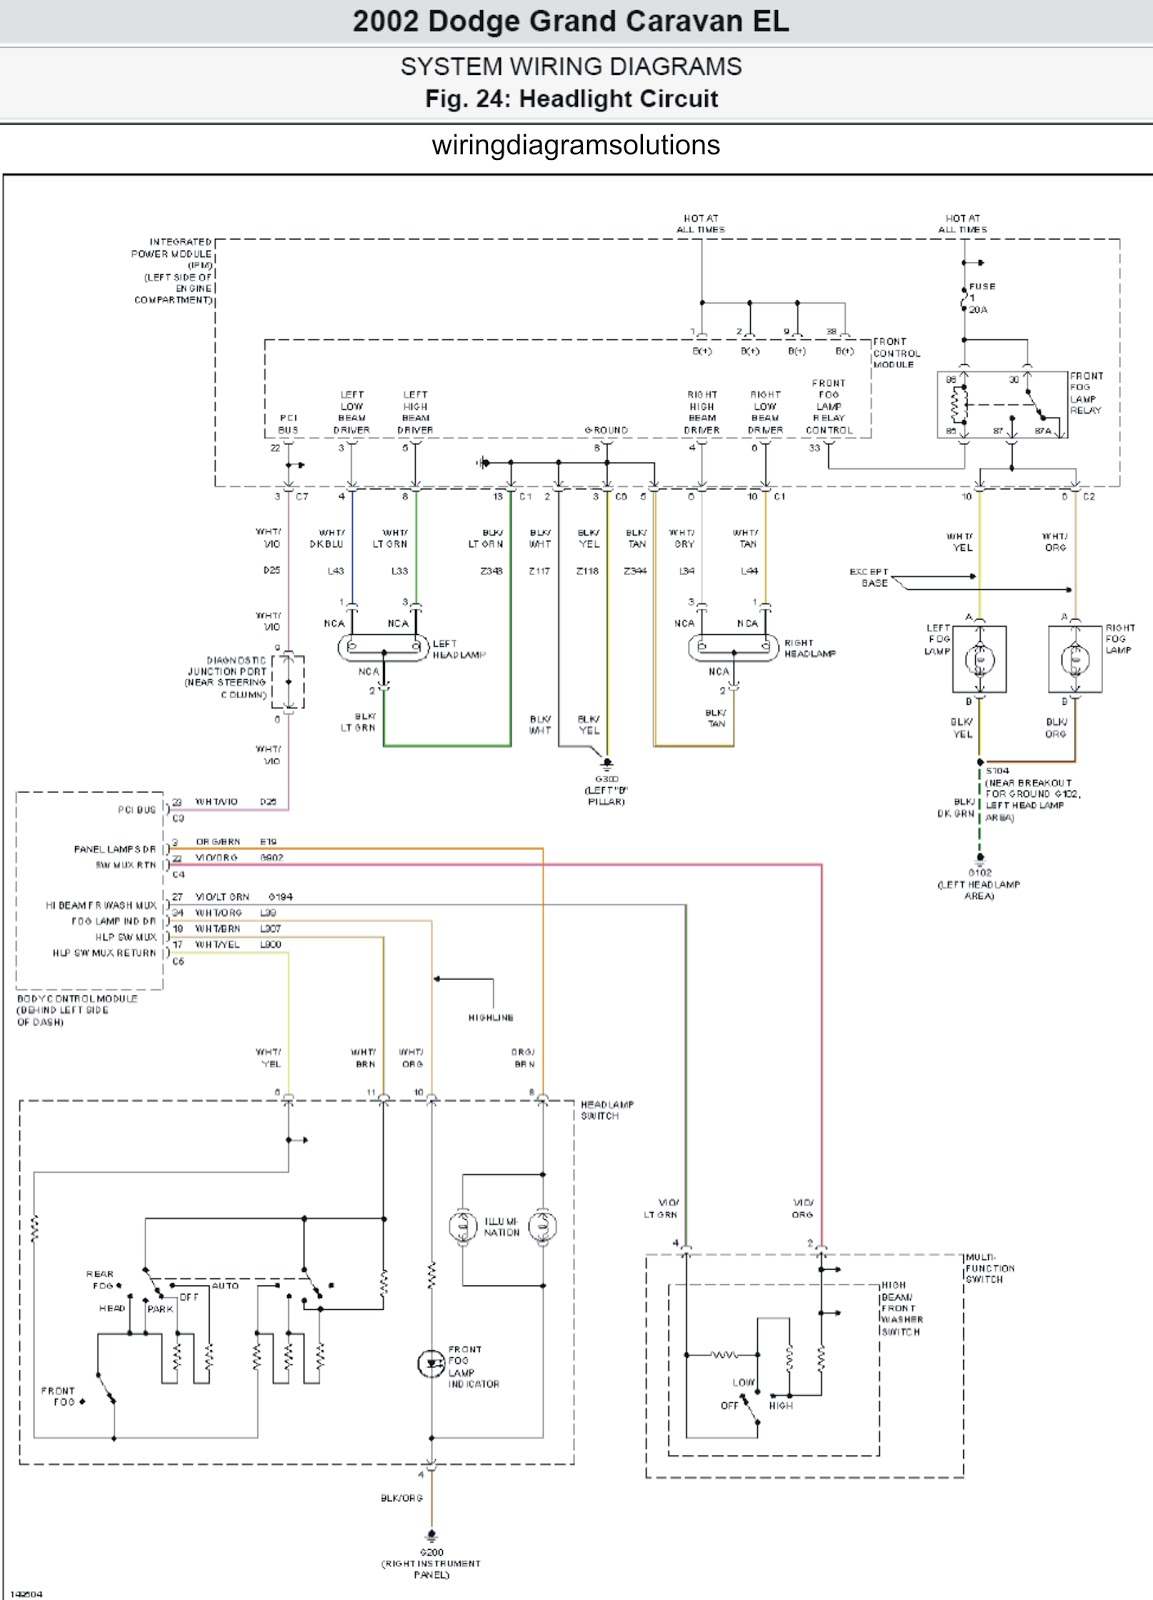 2002 Dodge Grand Caravan El System Wiring Diagrams Headlight Circuit